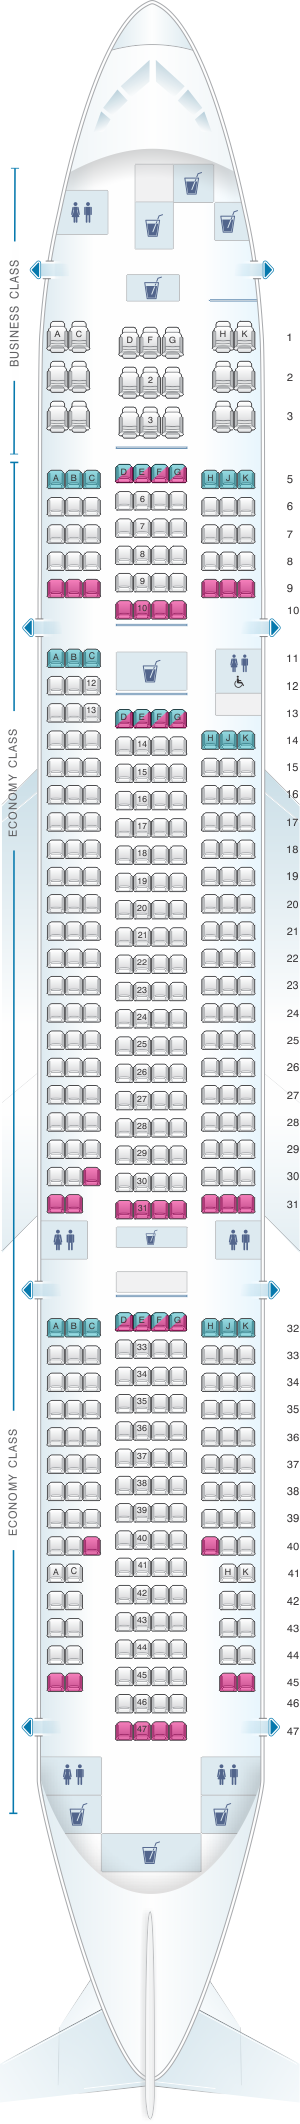 Seat map for ANA - All Nippon Airways Boeing B777 200 domestic